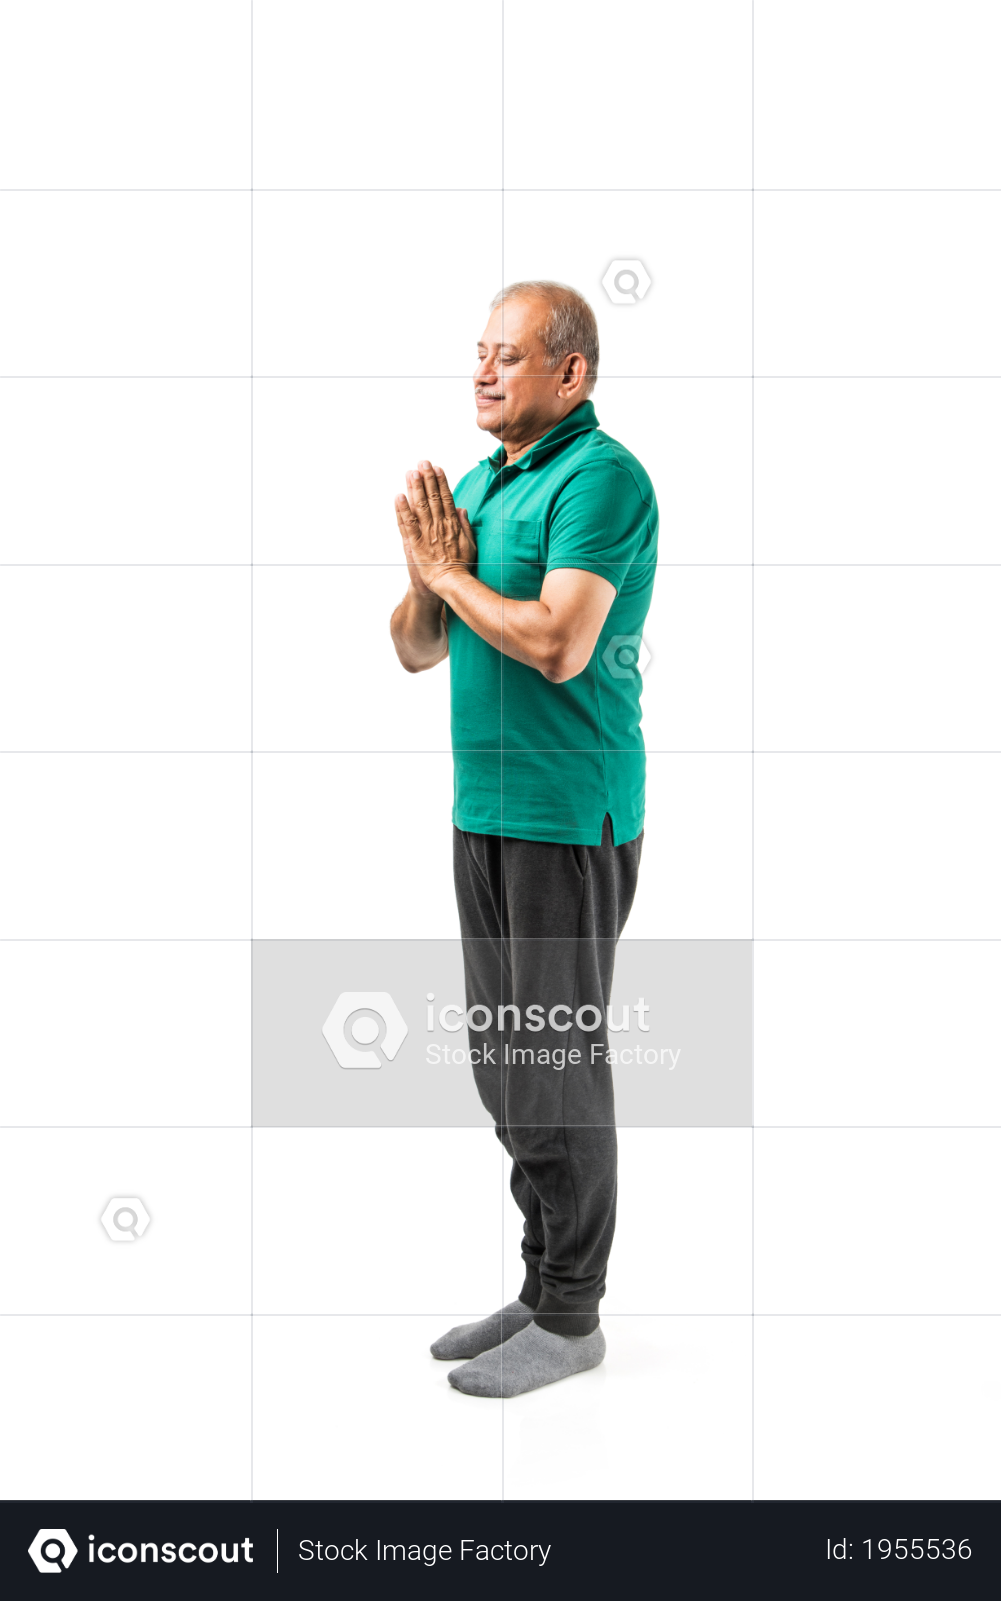 Premium Senior Indian Man Doing Yoga Or Meditation Over Isolated White Background Photo Download In Png Jpg Format